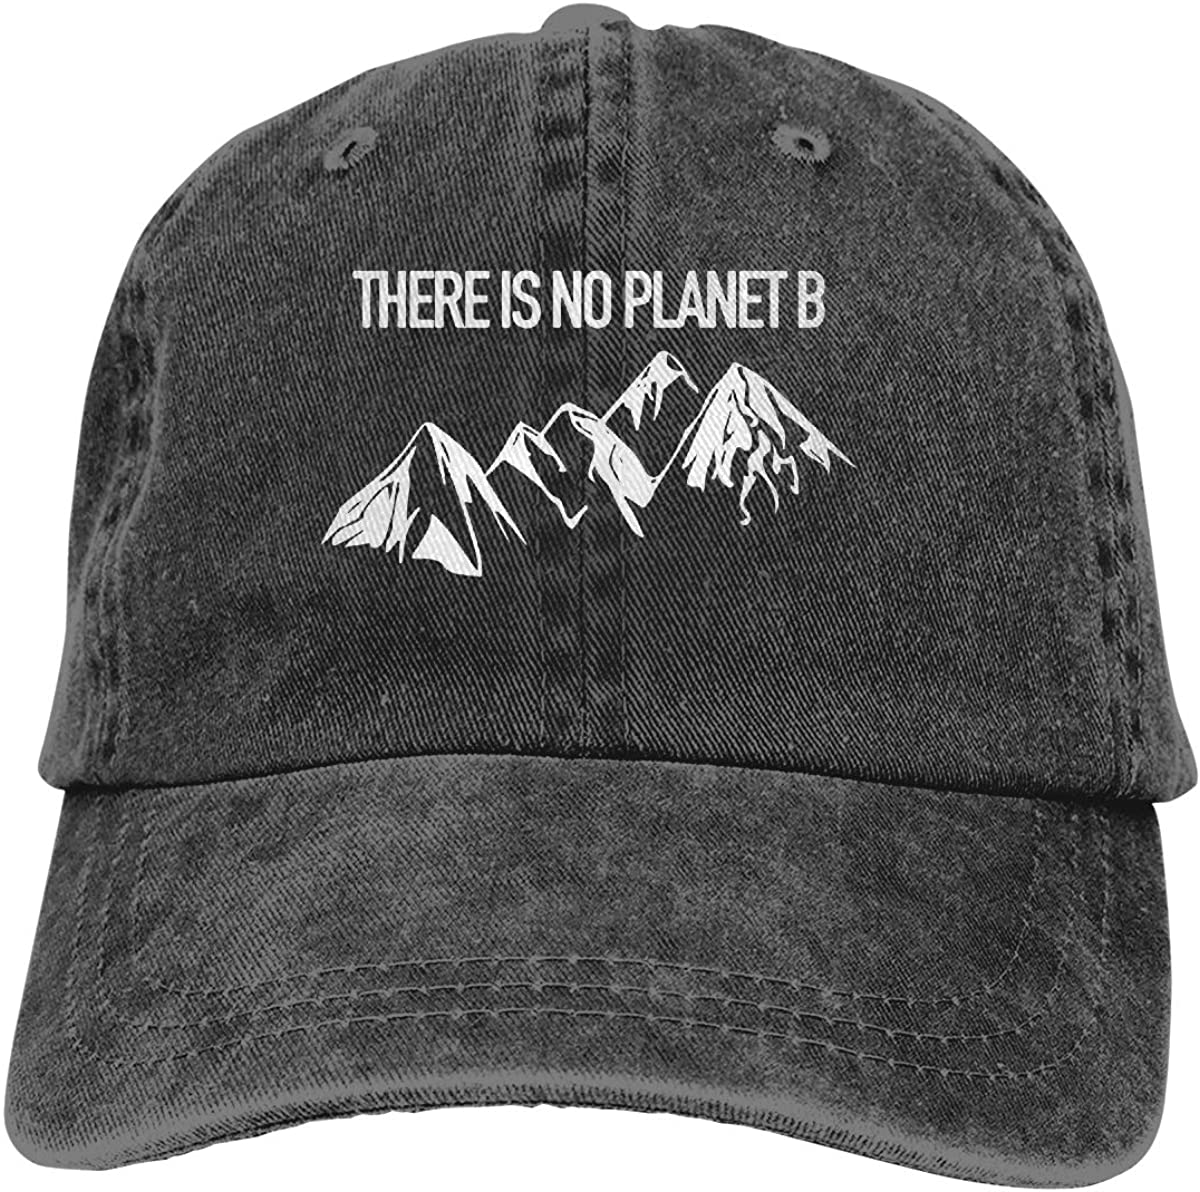 No Plan B Adult Custom Jeans Hip Hop Cap Adjustable Baseball Cap